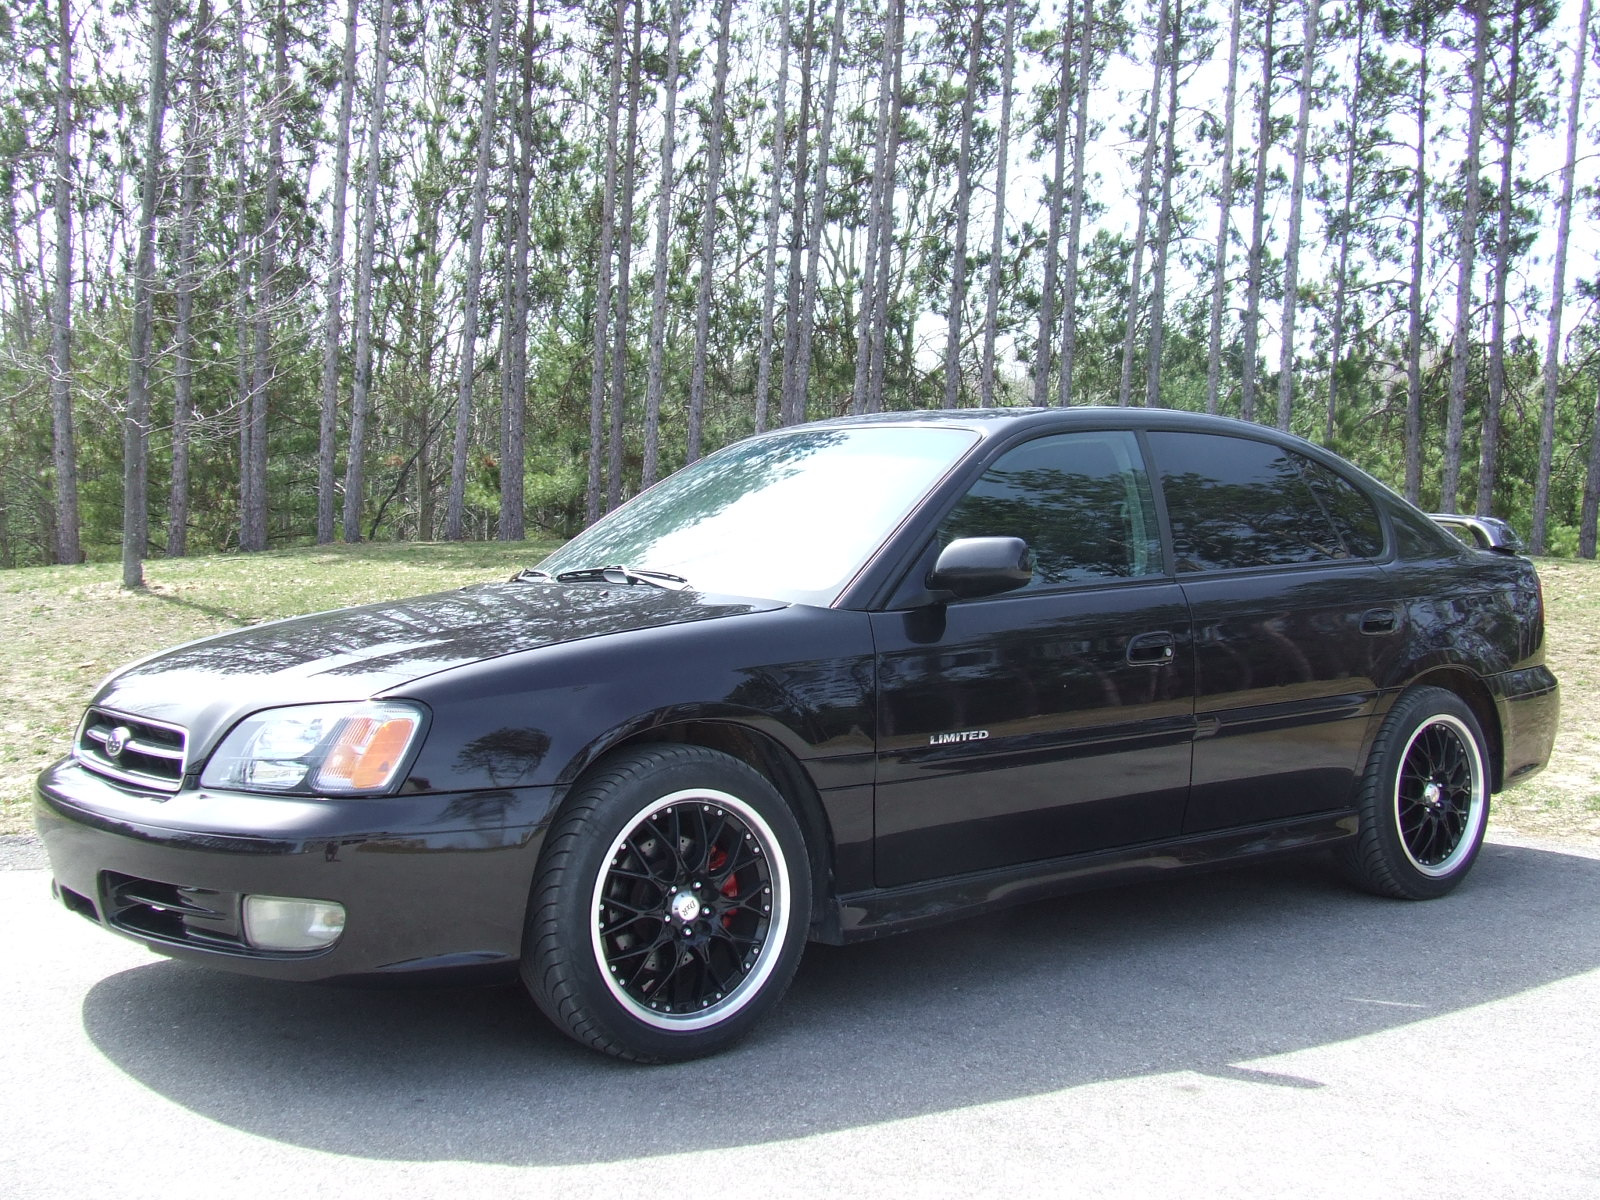 Picture of 2000 Subaru Legacy GT Limited